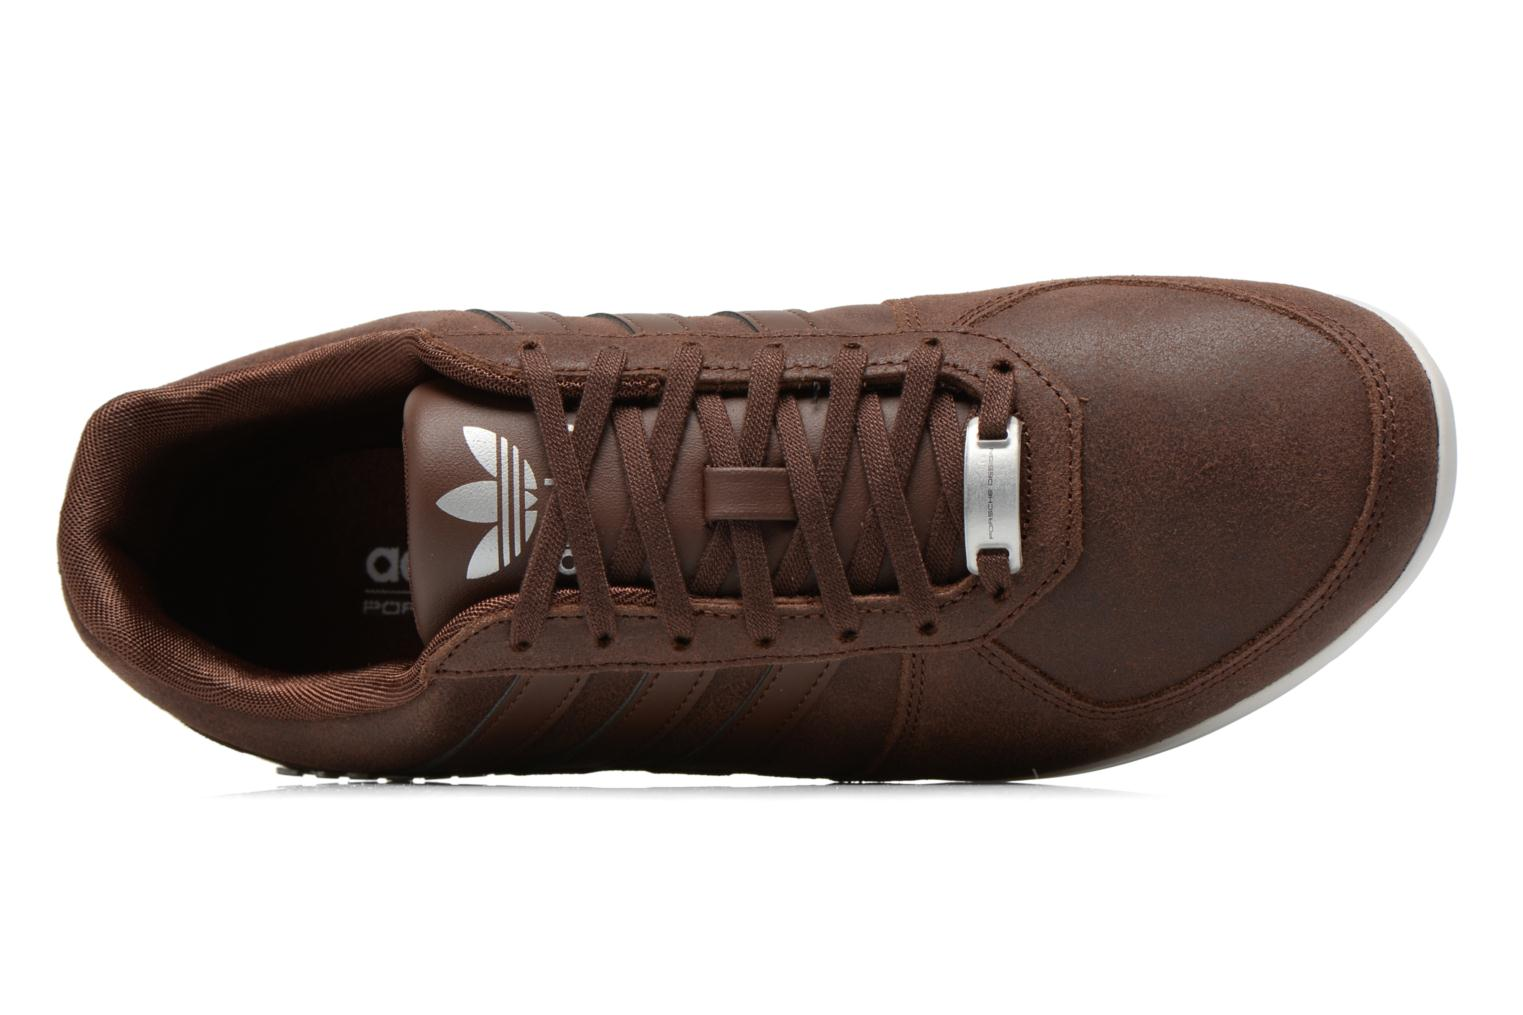 Baskets Adidas Originals Porsche 360 1.2 Suede Marron vue gauche